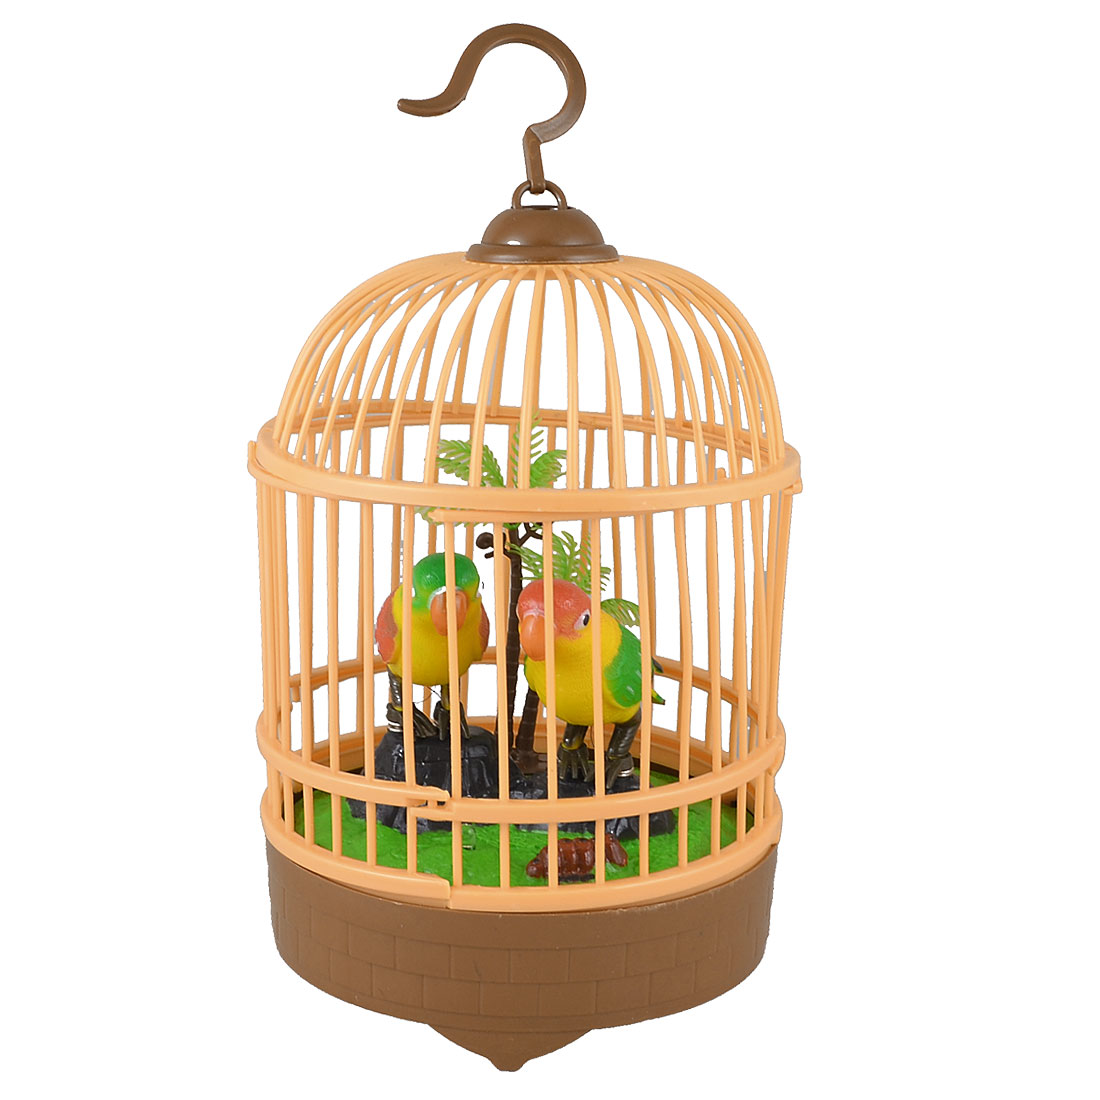 Child Plastic DIY Assembly Electric Emulation Birds Singing Sound Control Bird Cage Toy